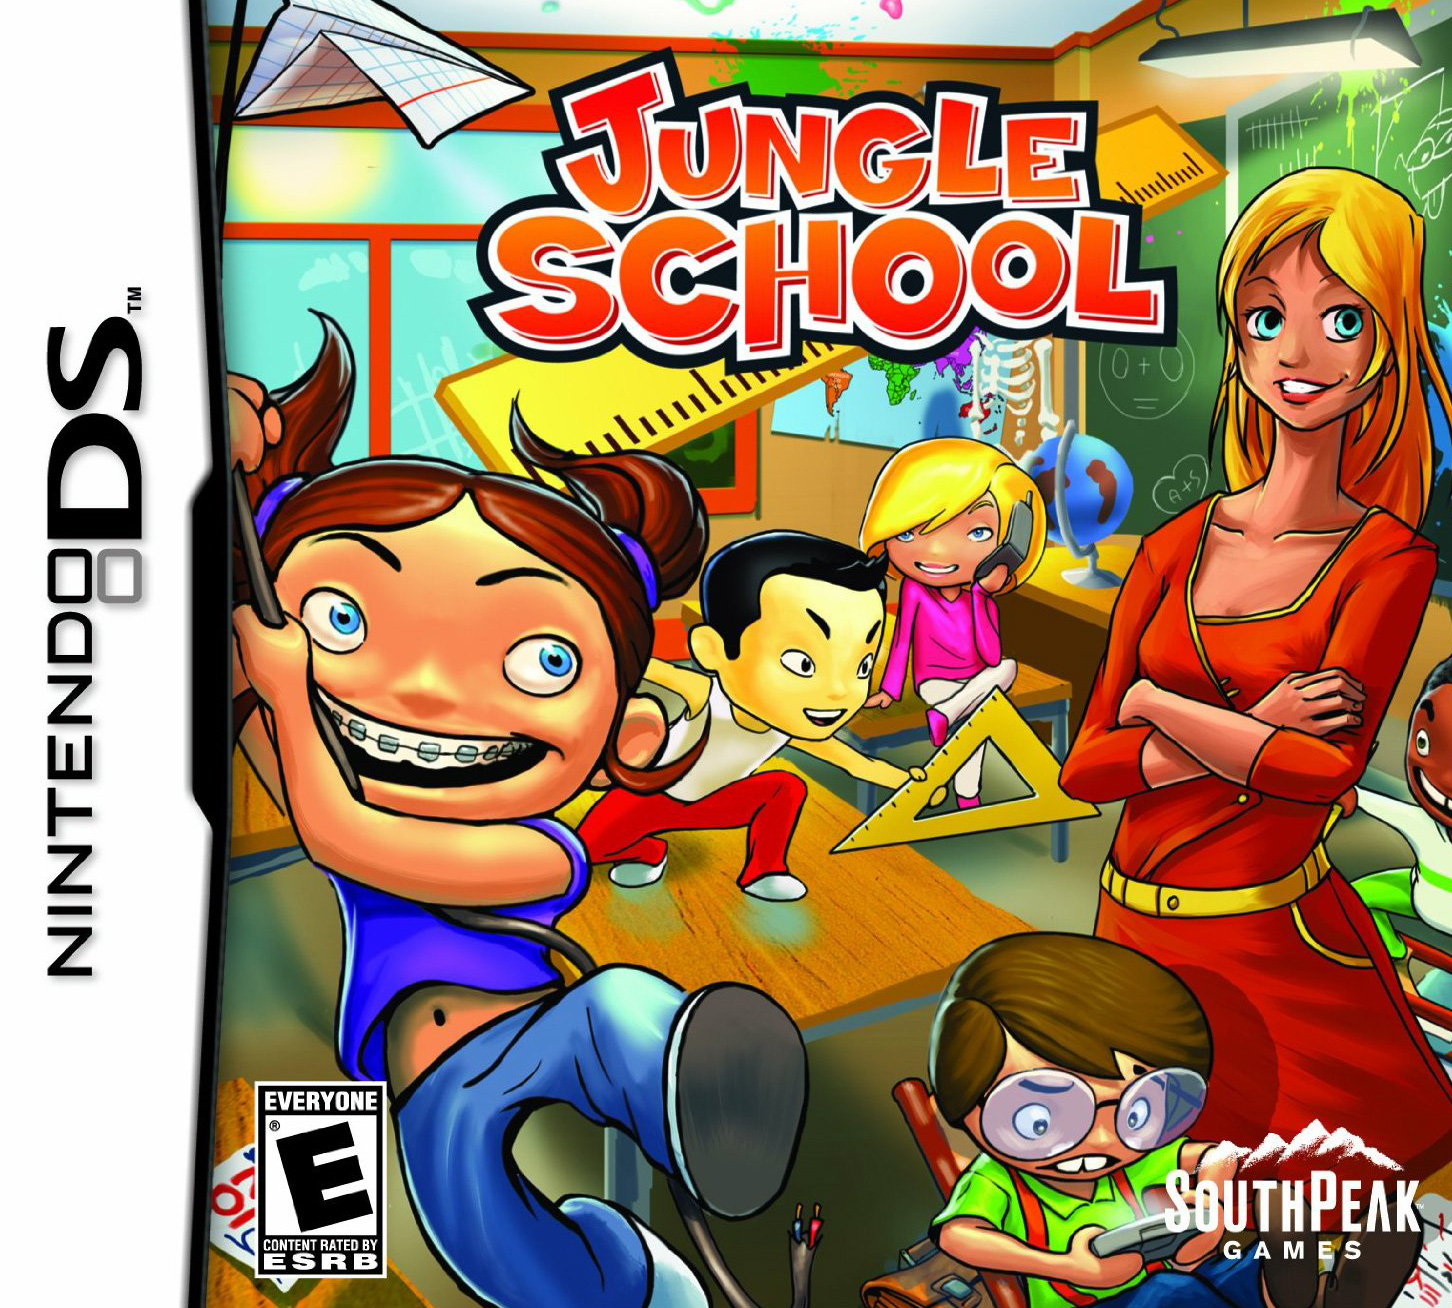 Jungle School